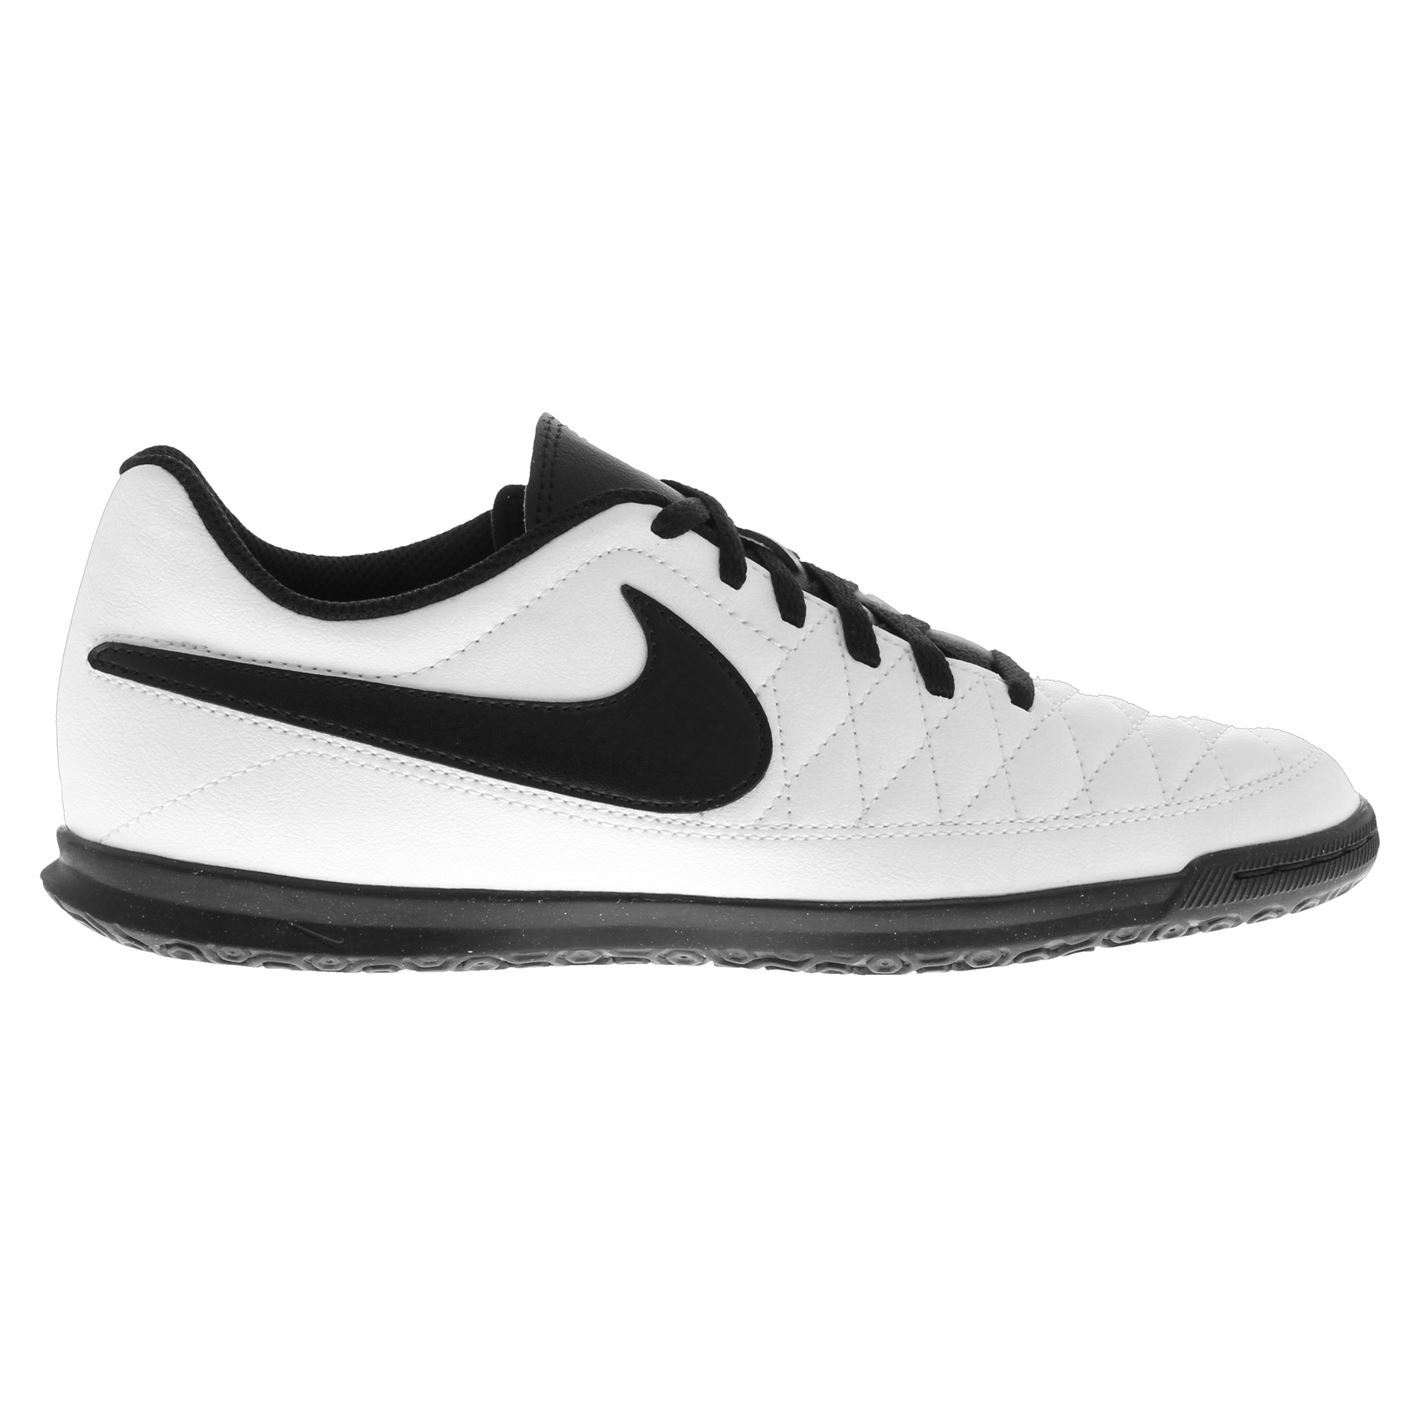 Nike-majestry-Indoor-Football-Baskets-Pour-Homme-Football-Futsal-Chaussures-Baskets-Bottes miniature 25